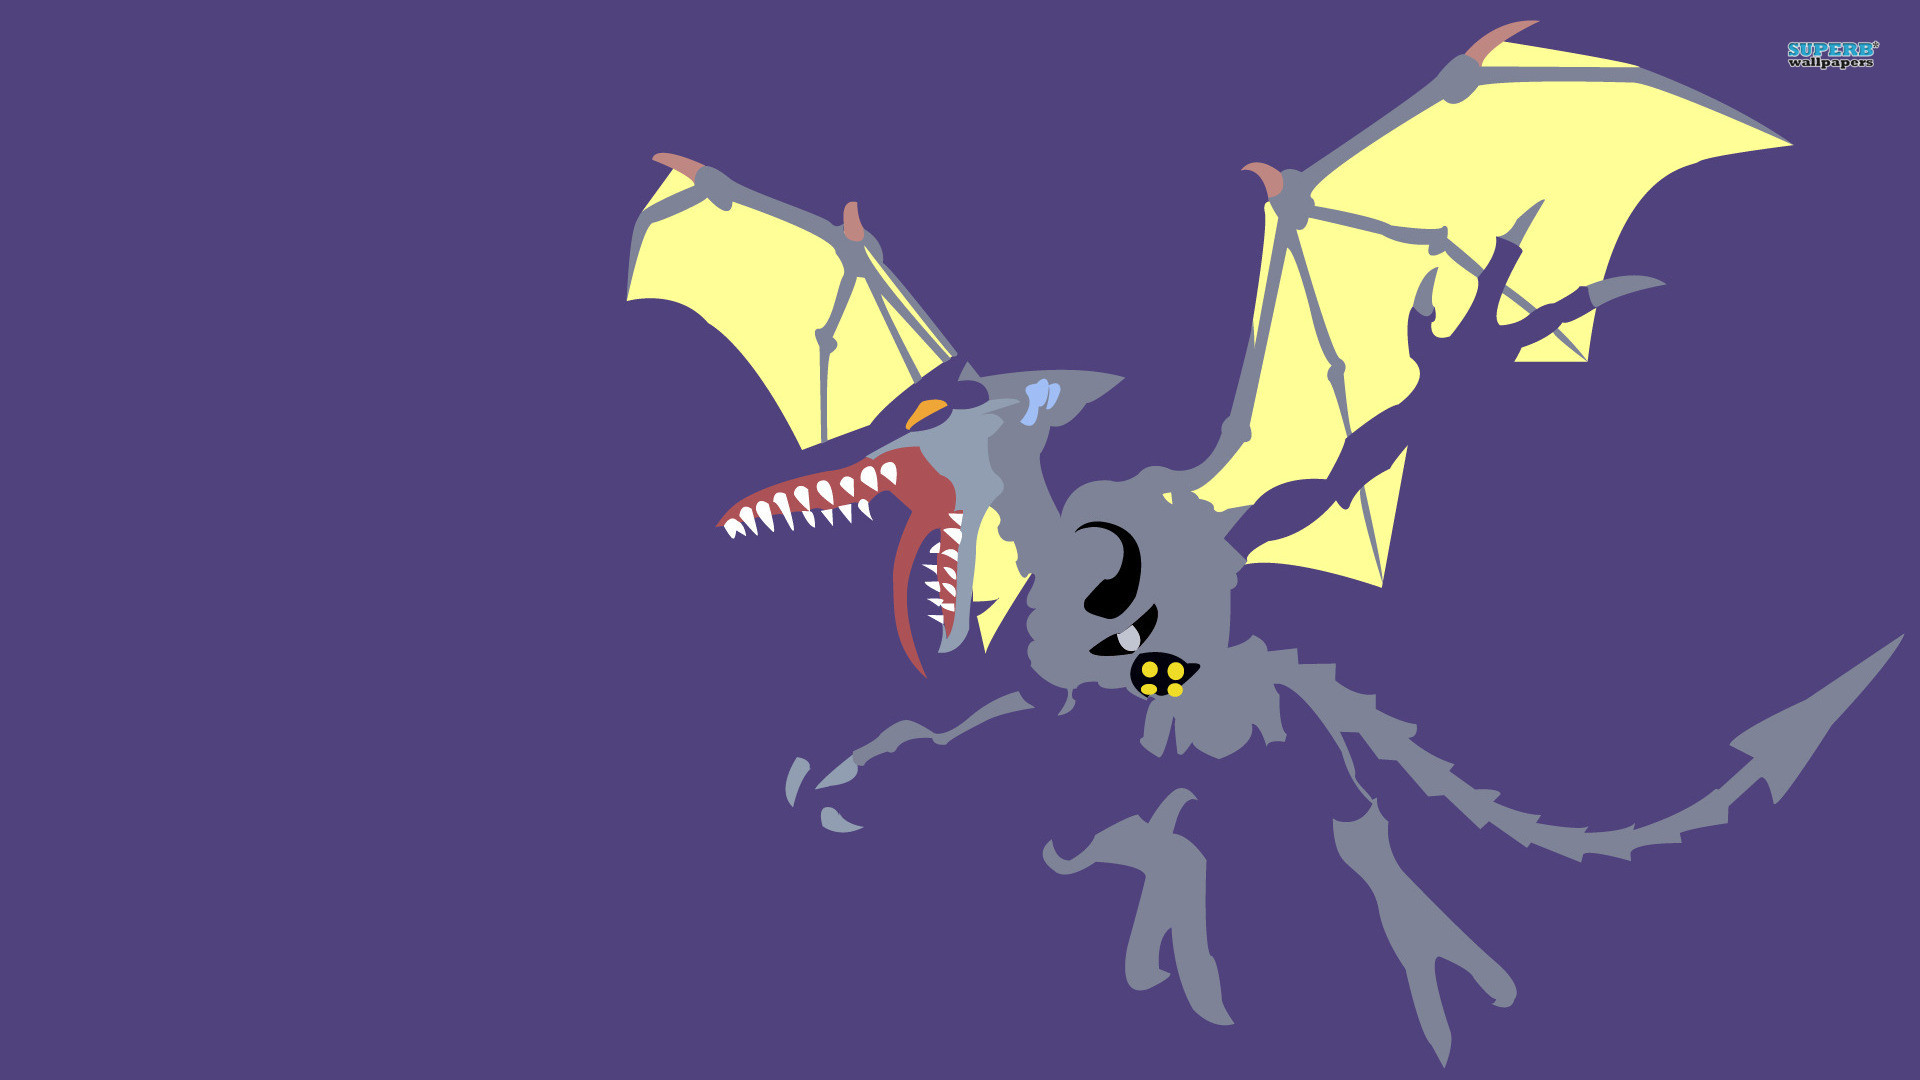 Ridley images Ridley HD wallpaper and background photos